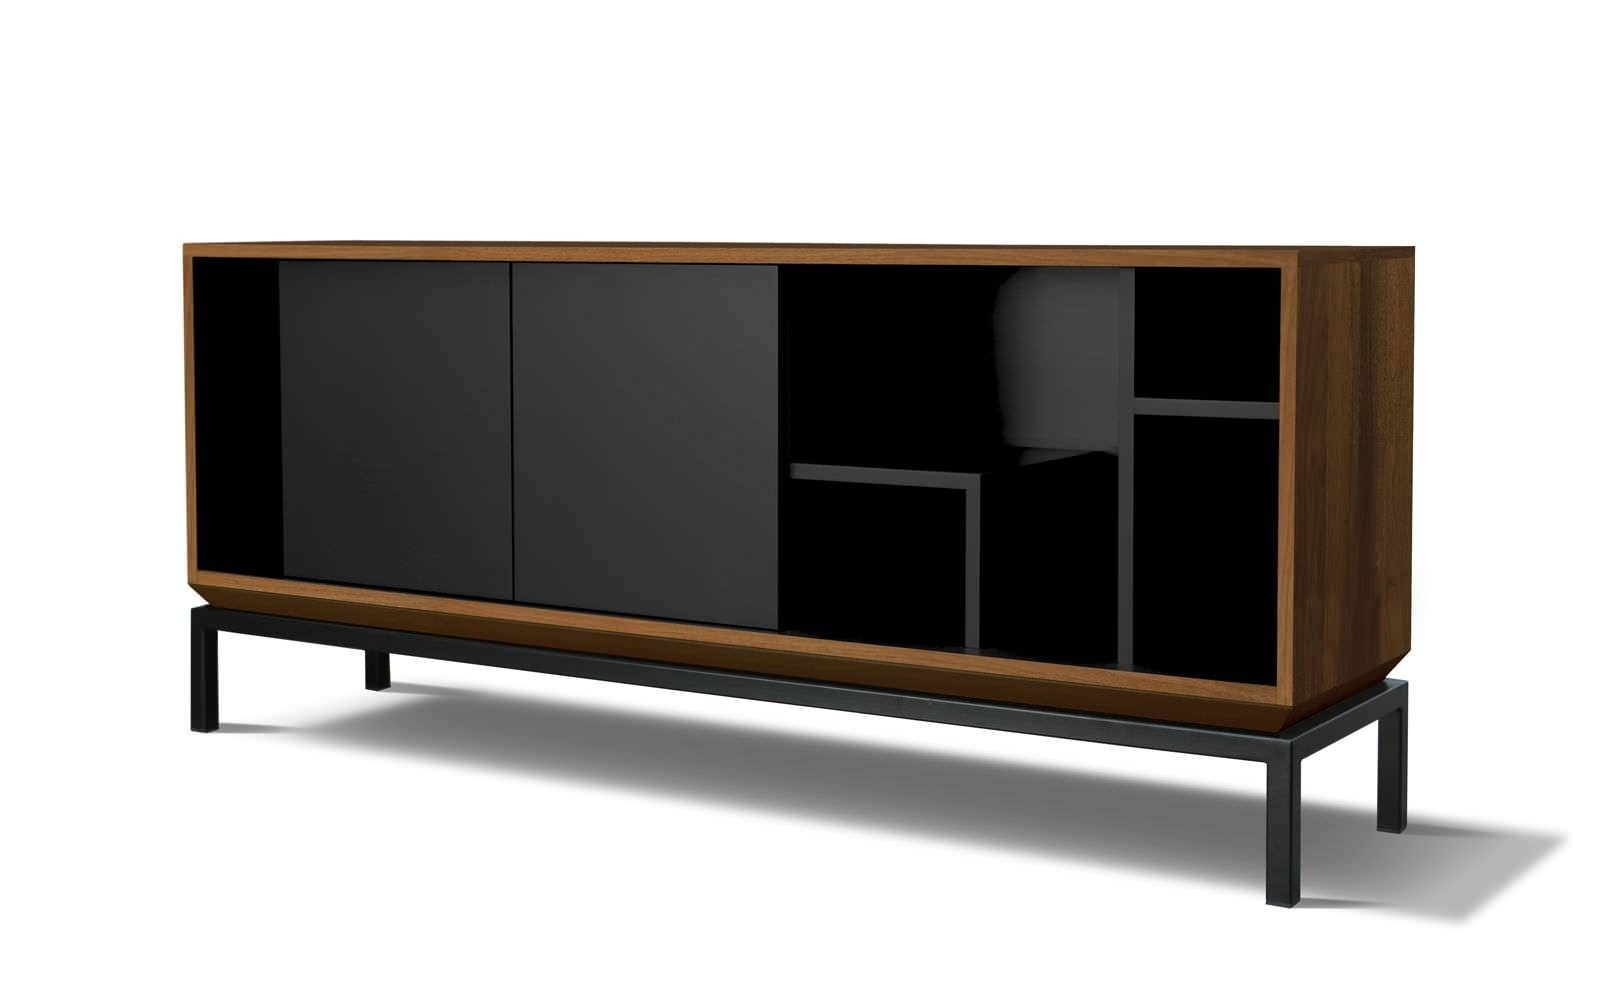 Contemporary Sideboard / Oak / Walnut / Lacquered Mdf – My City Regarding Black And Walnut Sideboards (#6 of 15)